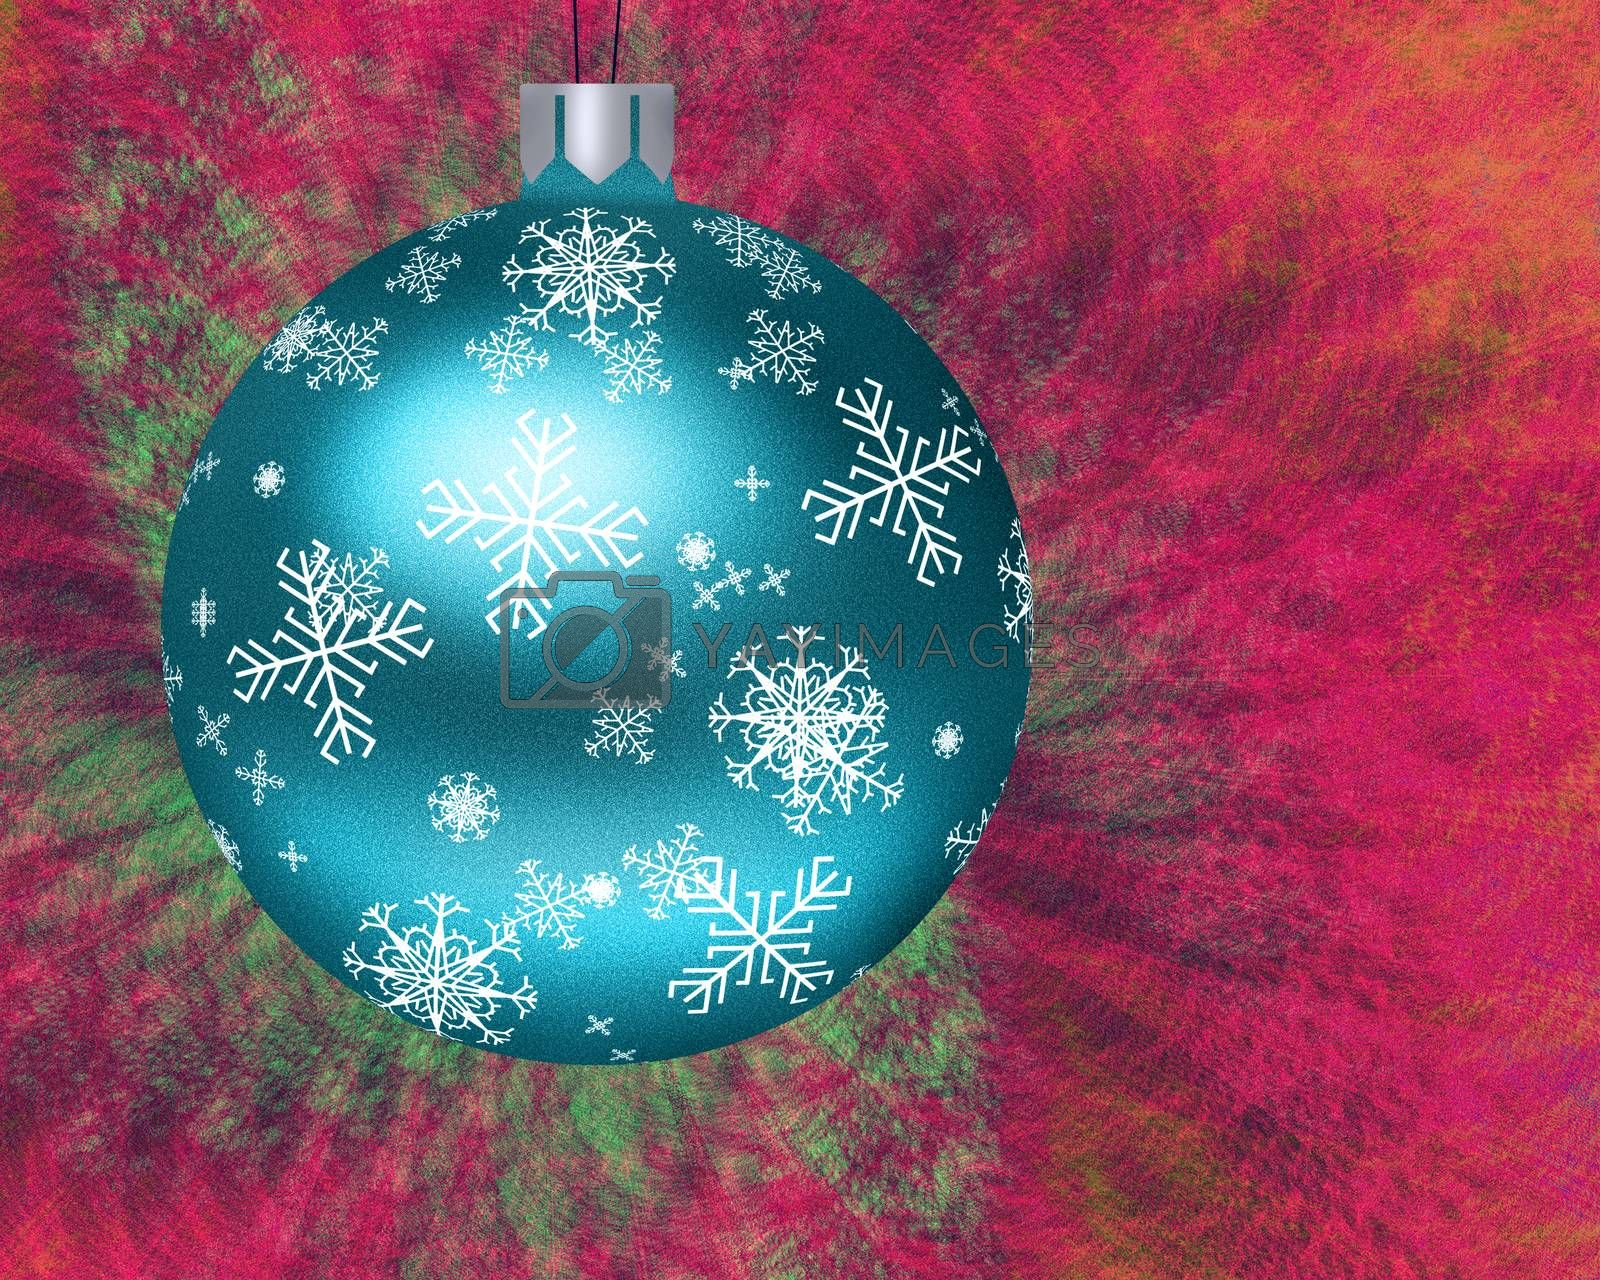 Christmas Tree Ornament. Ball with snowflakes